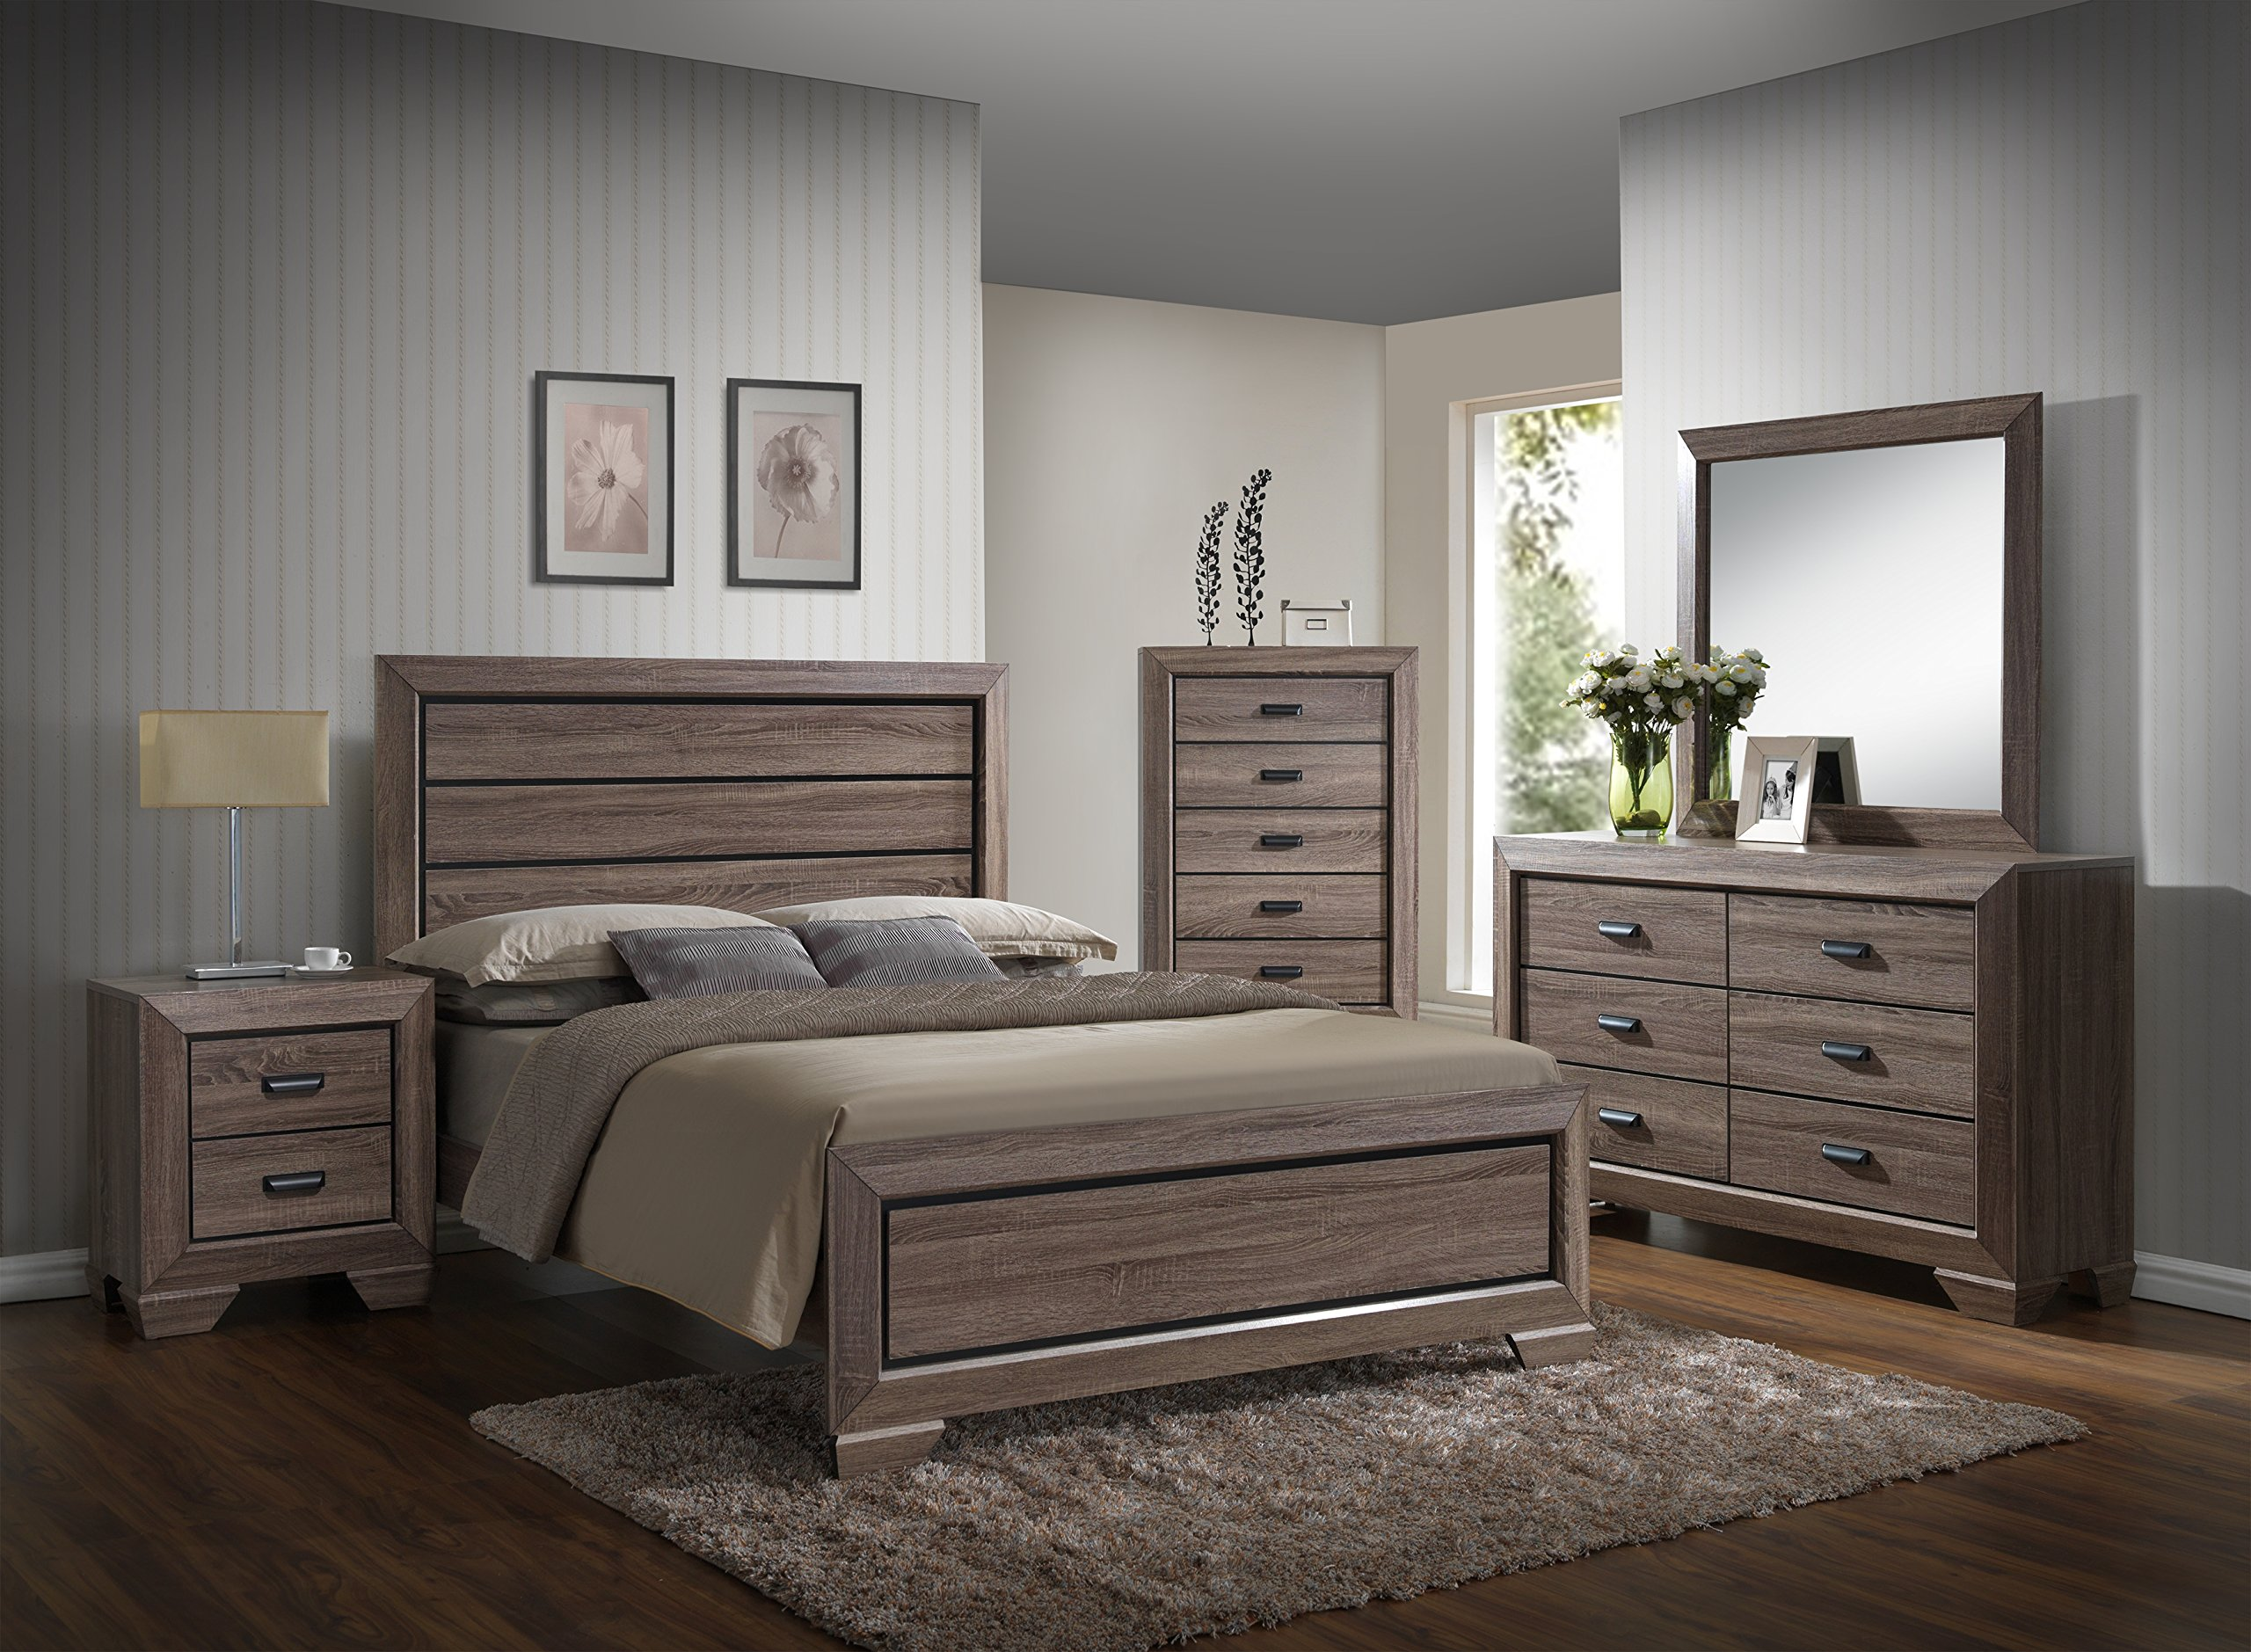 GTU Furniture Lyndon 5Pc Weathered Grey Panel Bedroom Set (Queen Bed, Nightstand,Dresser,Mirror and Chest)